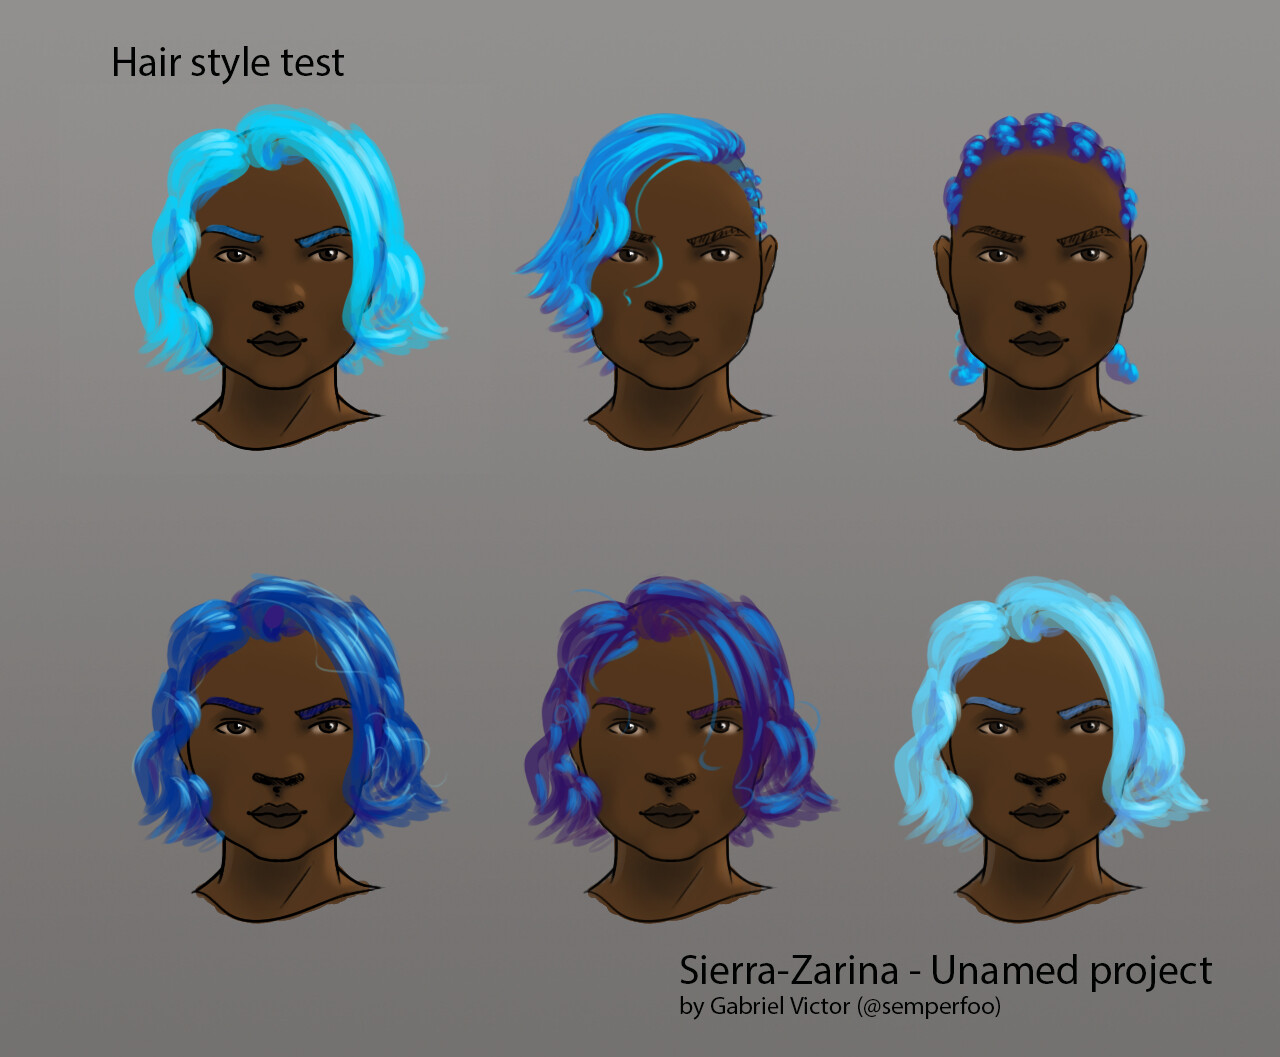 Hair style and color test